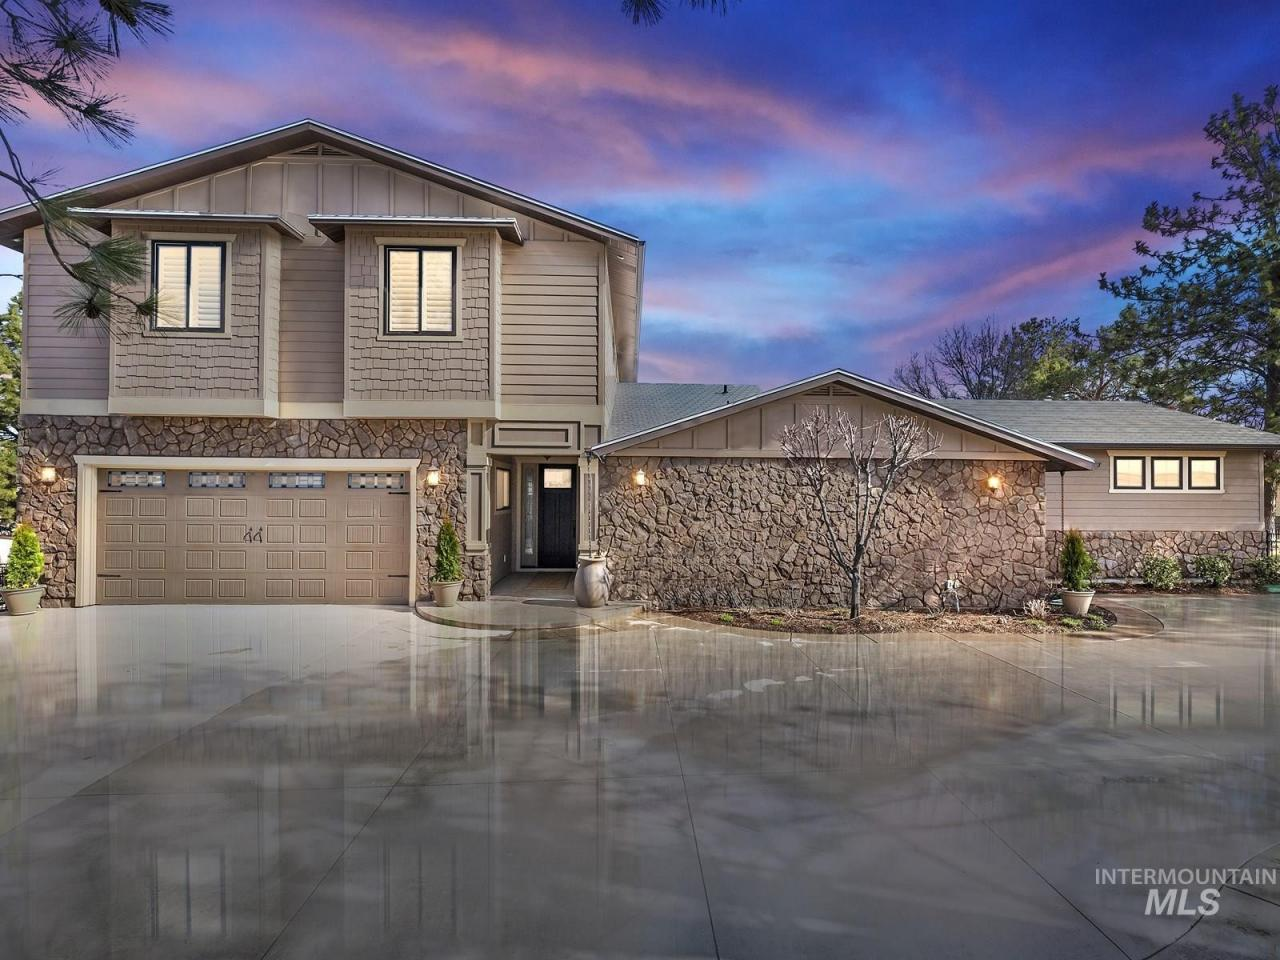 Home for sale in Boise idaho